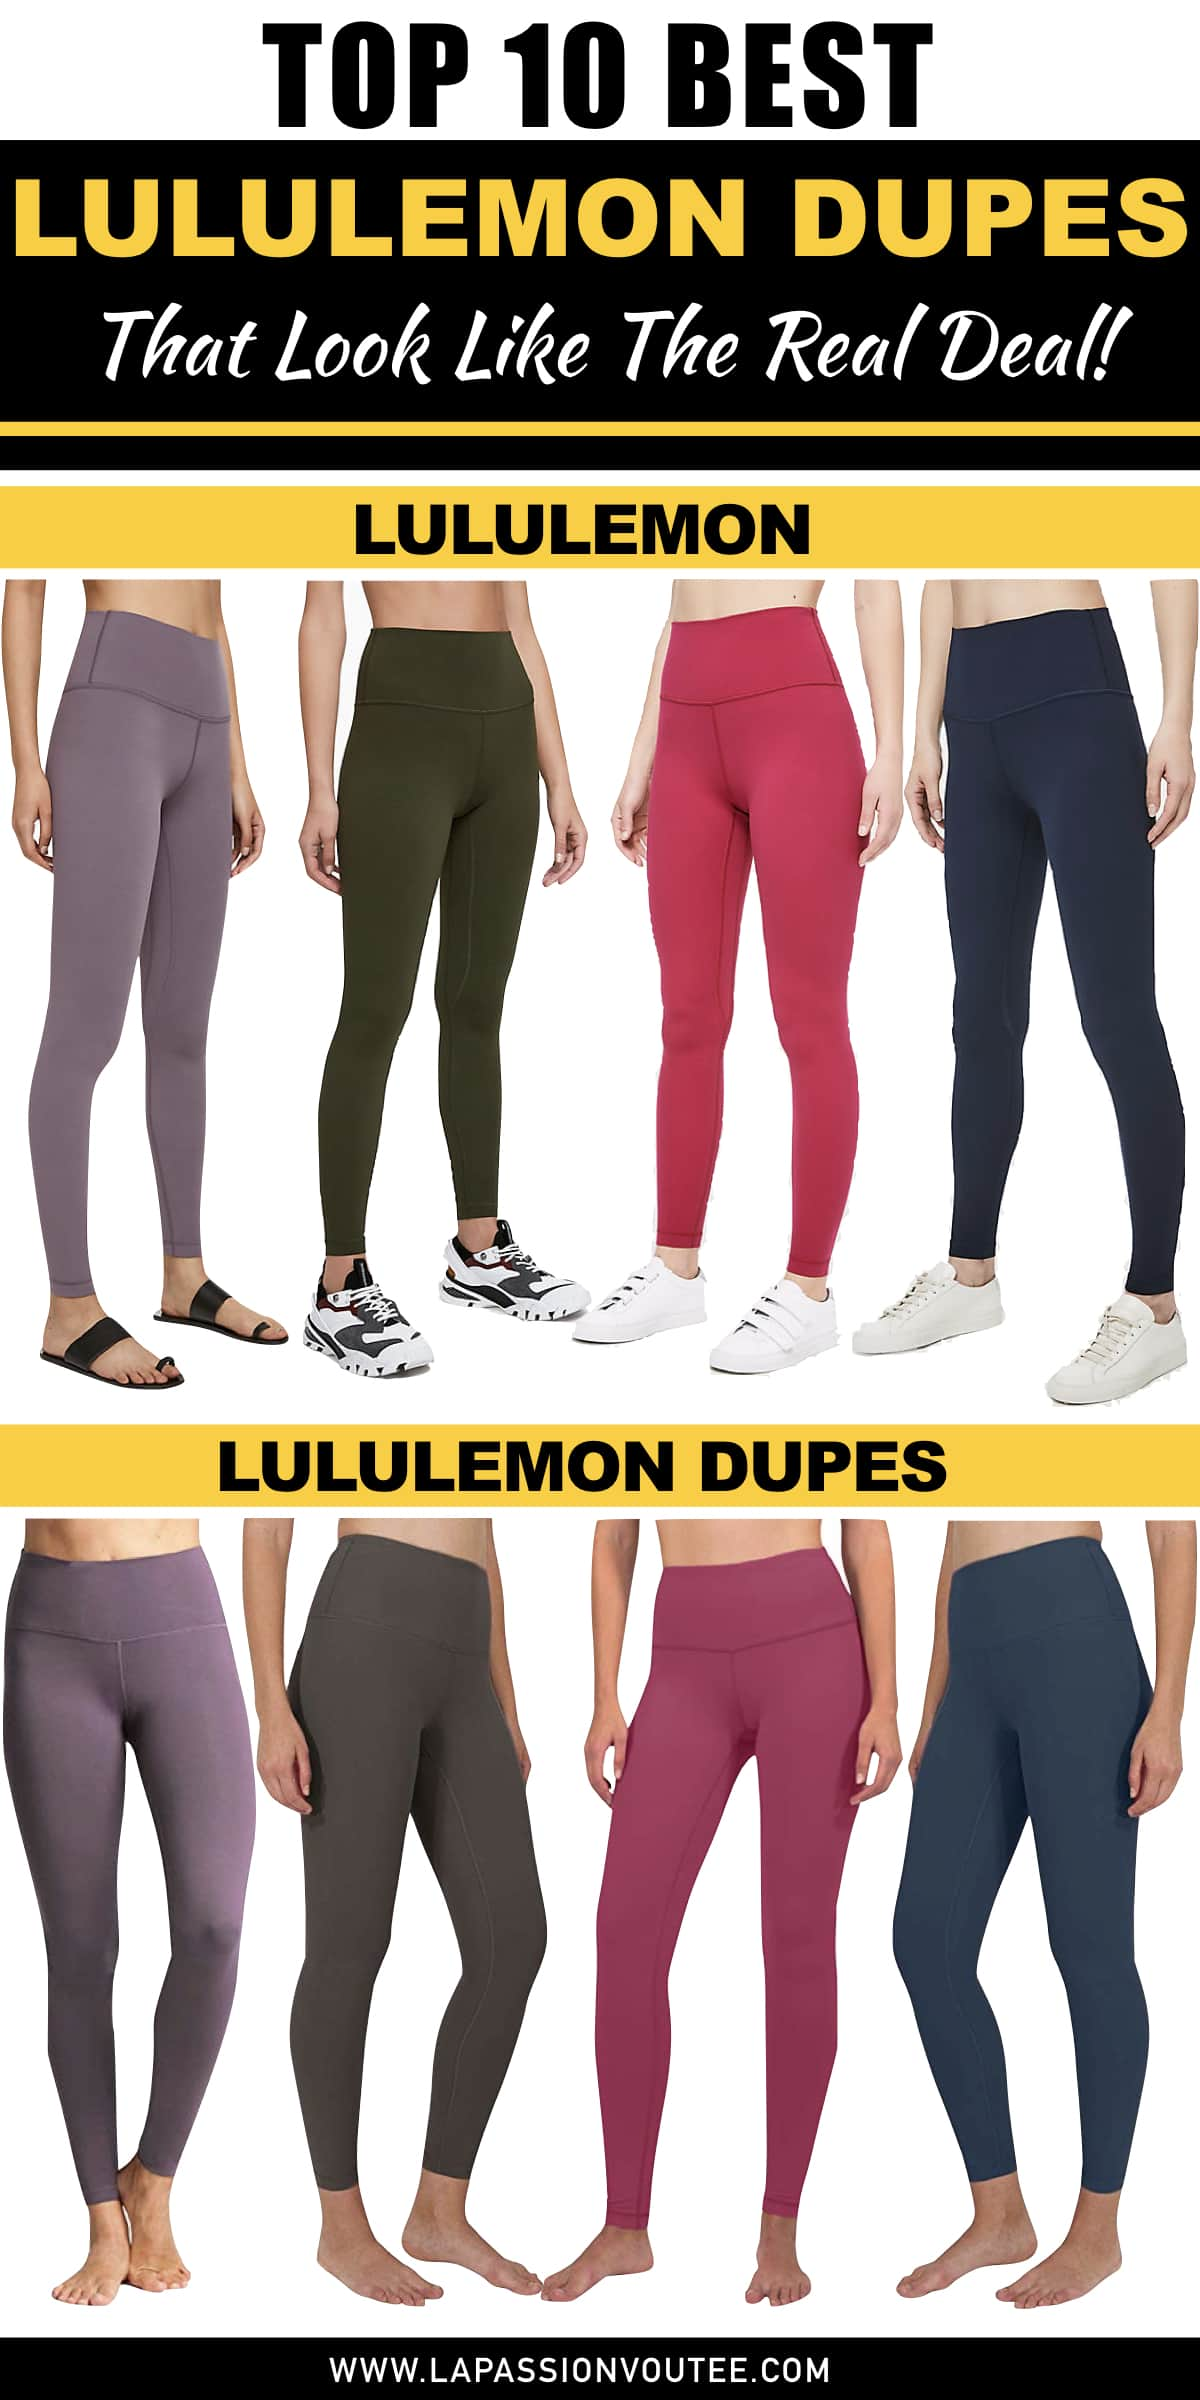 f651e92c08 After much research (and shopping), these are the best of the best Lululemon